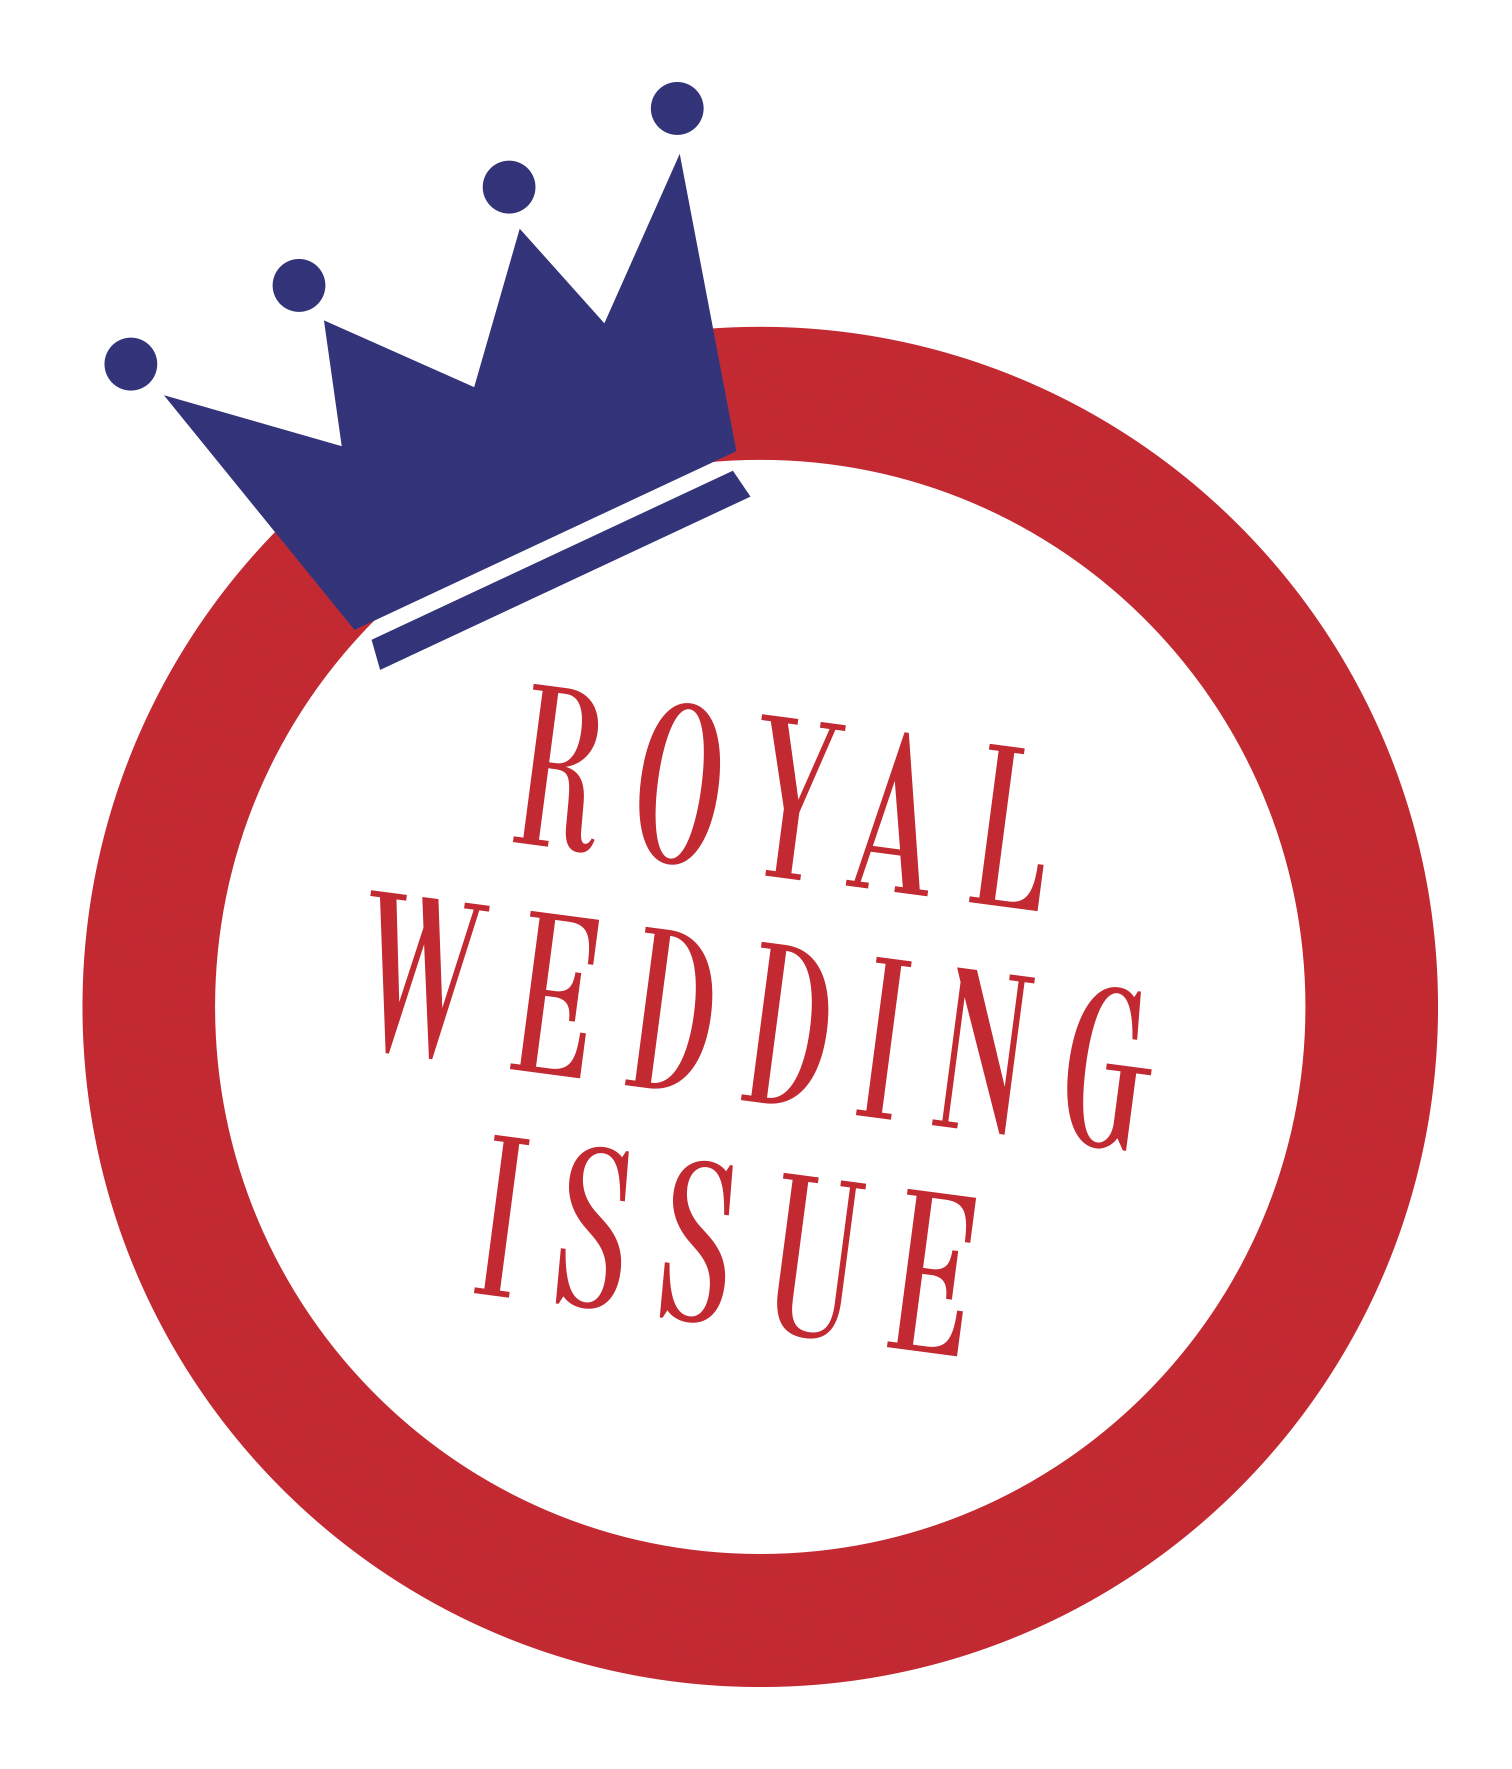 Royalweddingissuelogo 1.png